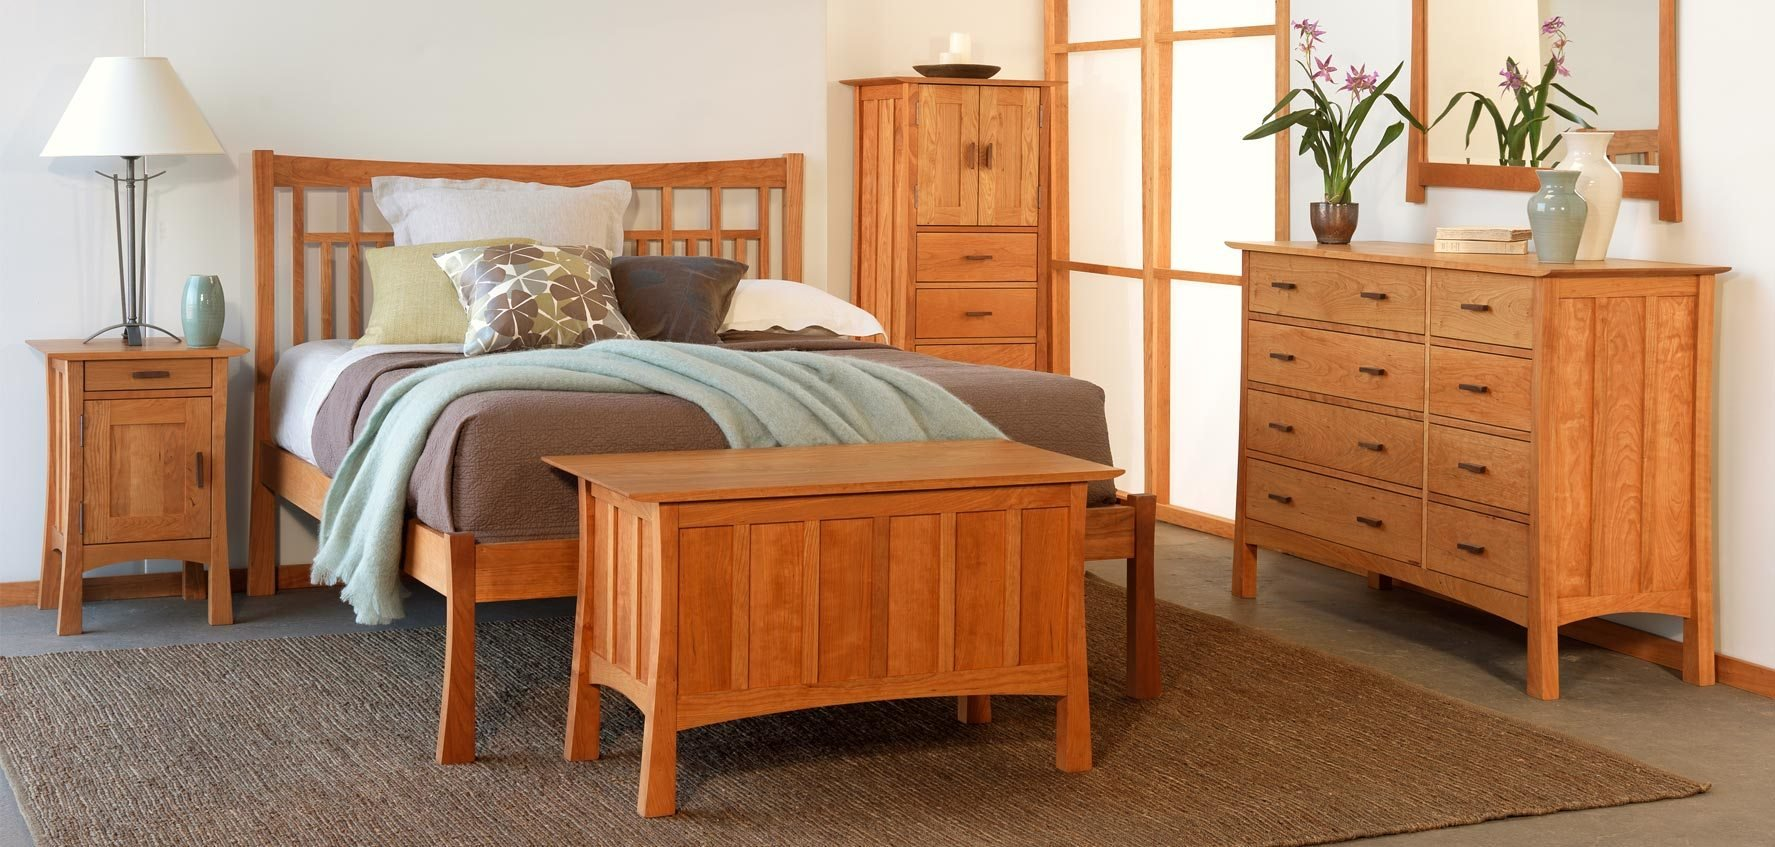 Best Contemporary Craftsman Furniture Collection Vermont Woods Studios With Pictures